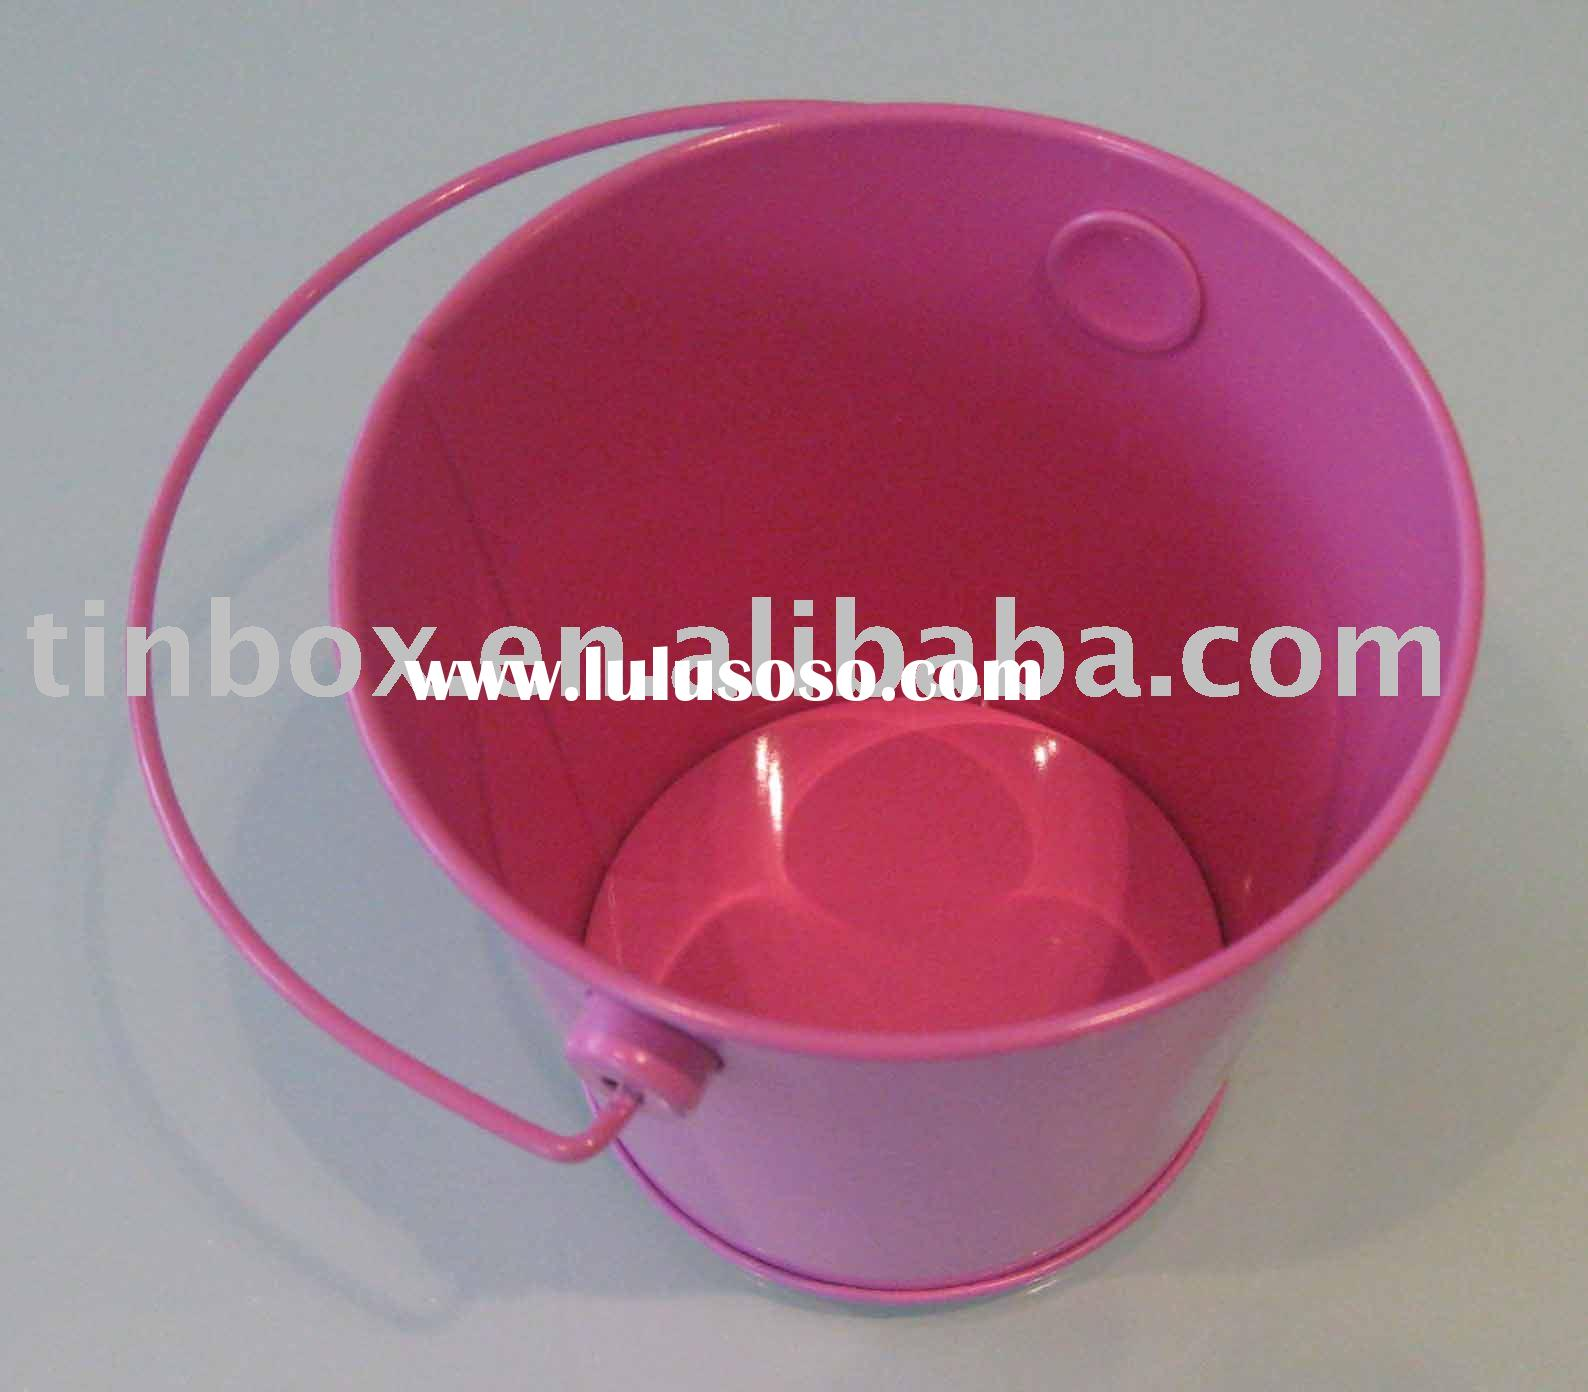 tin bucket for sale - Price,CN Manufacturer,Supplier 3544144